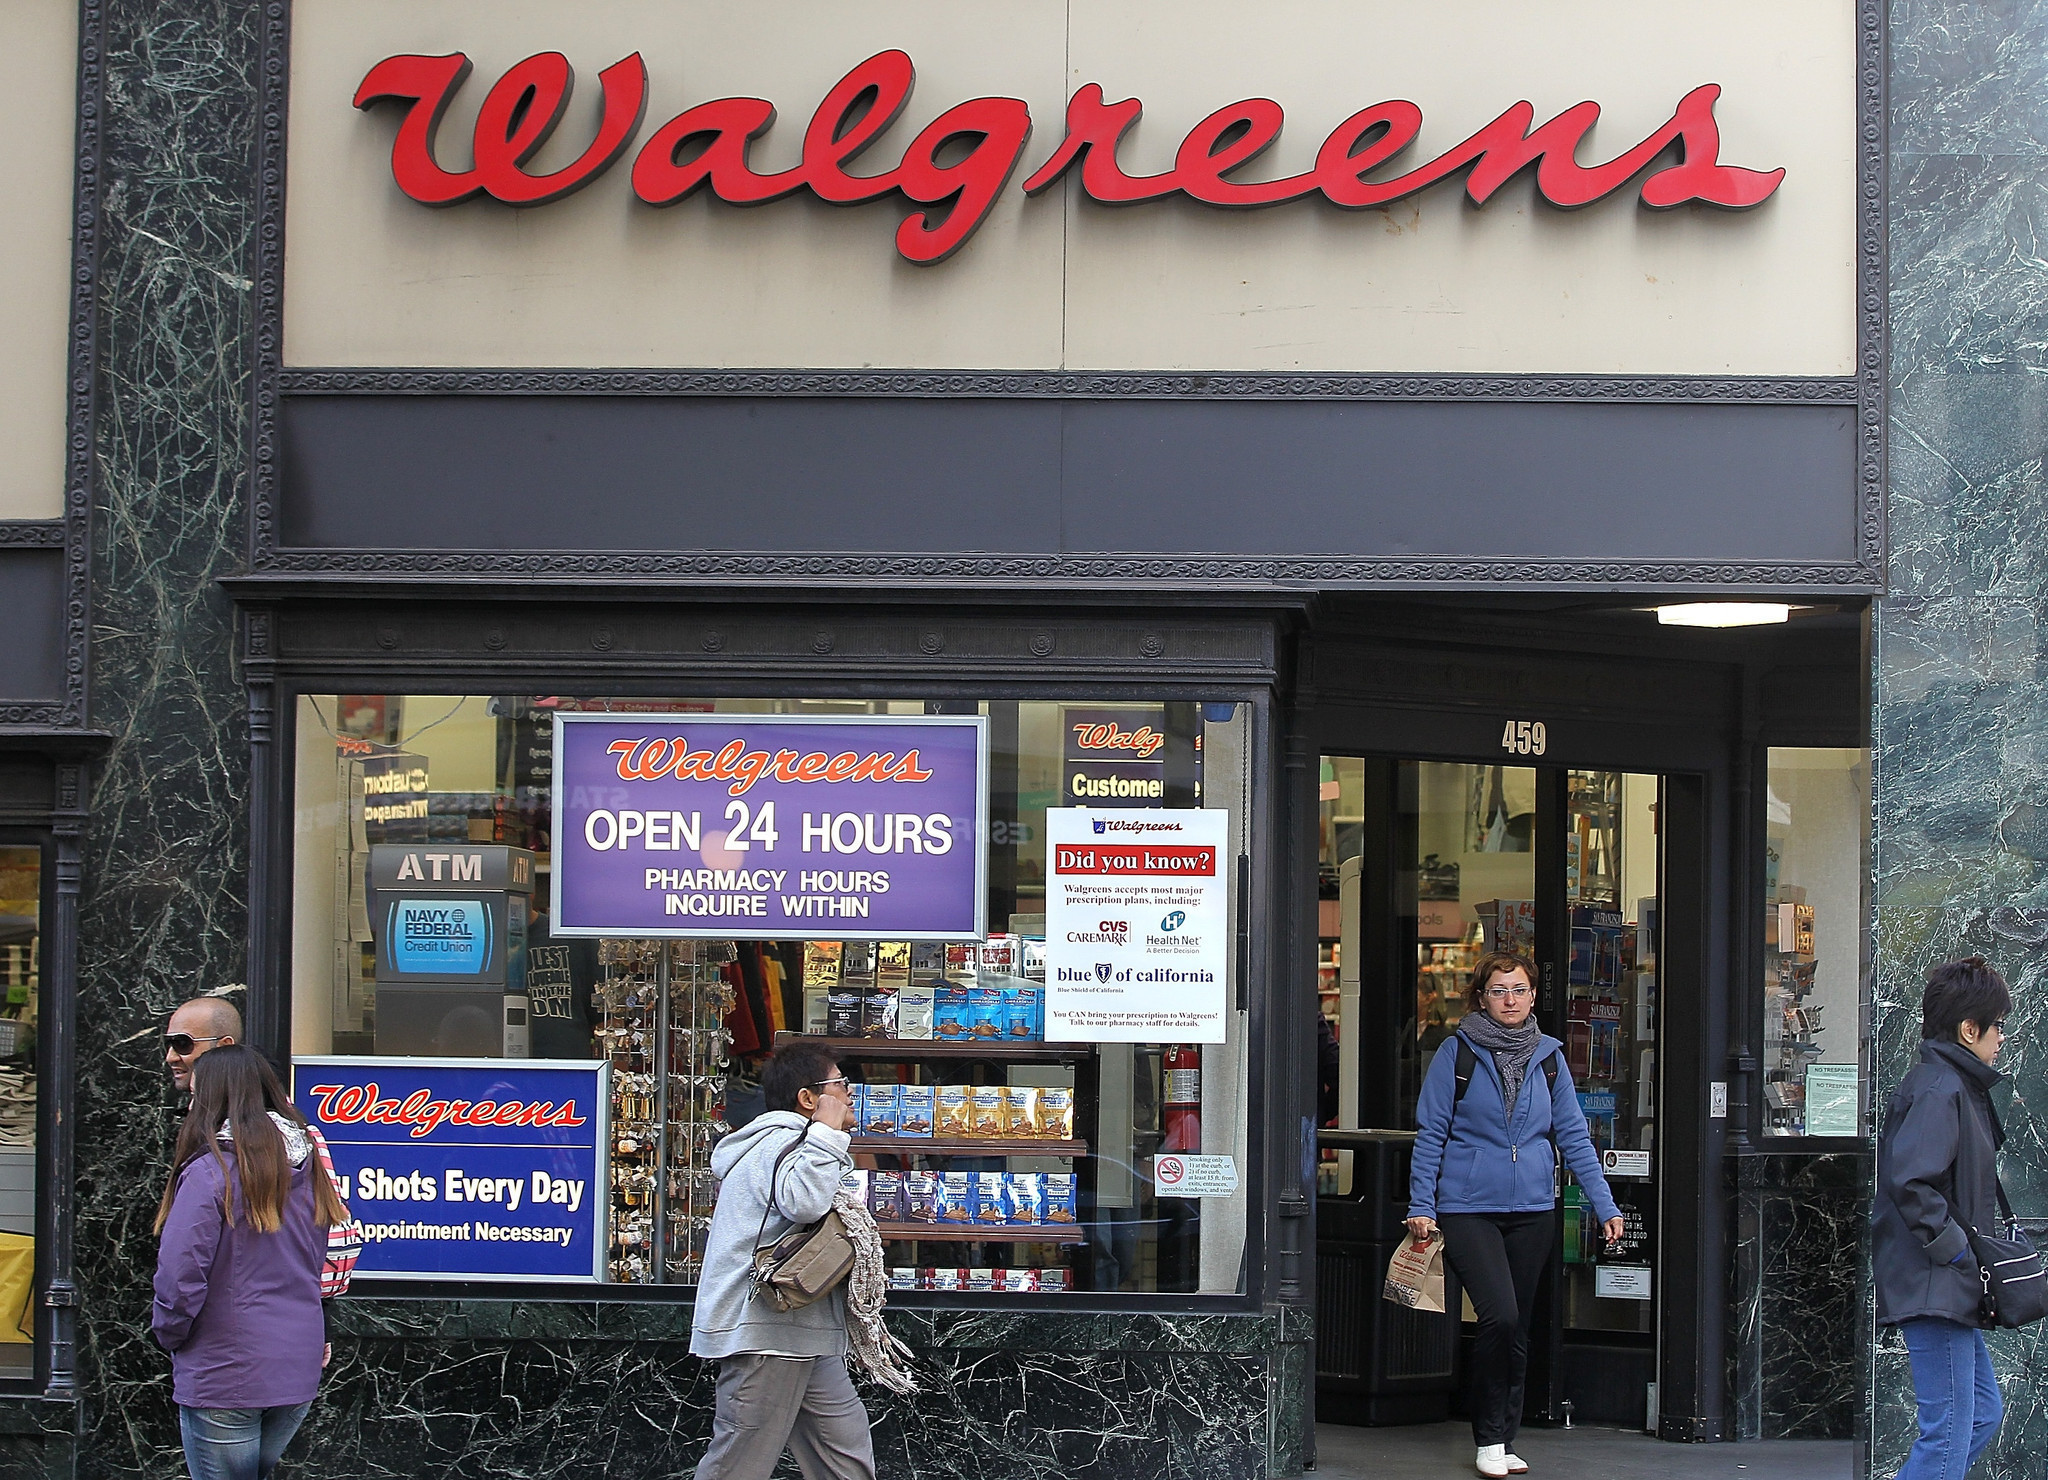 Employees at home for walgreens - Employees At Home For Walgreens 44